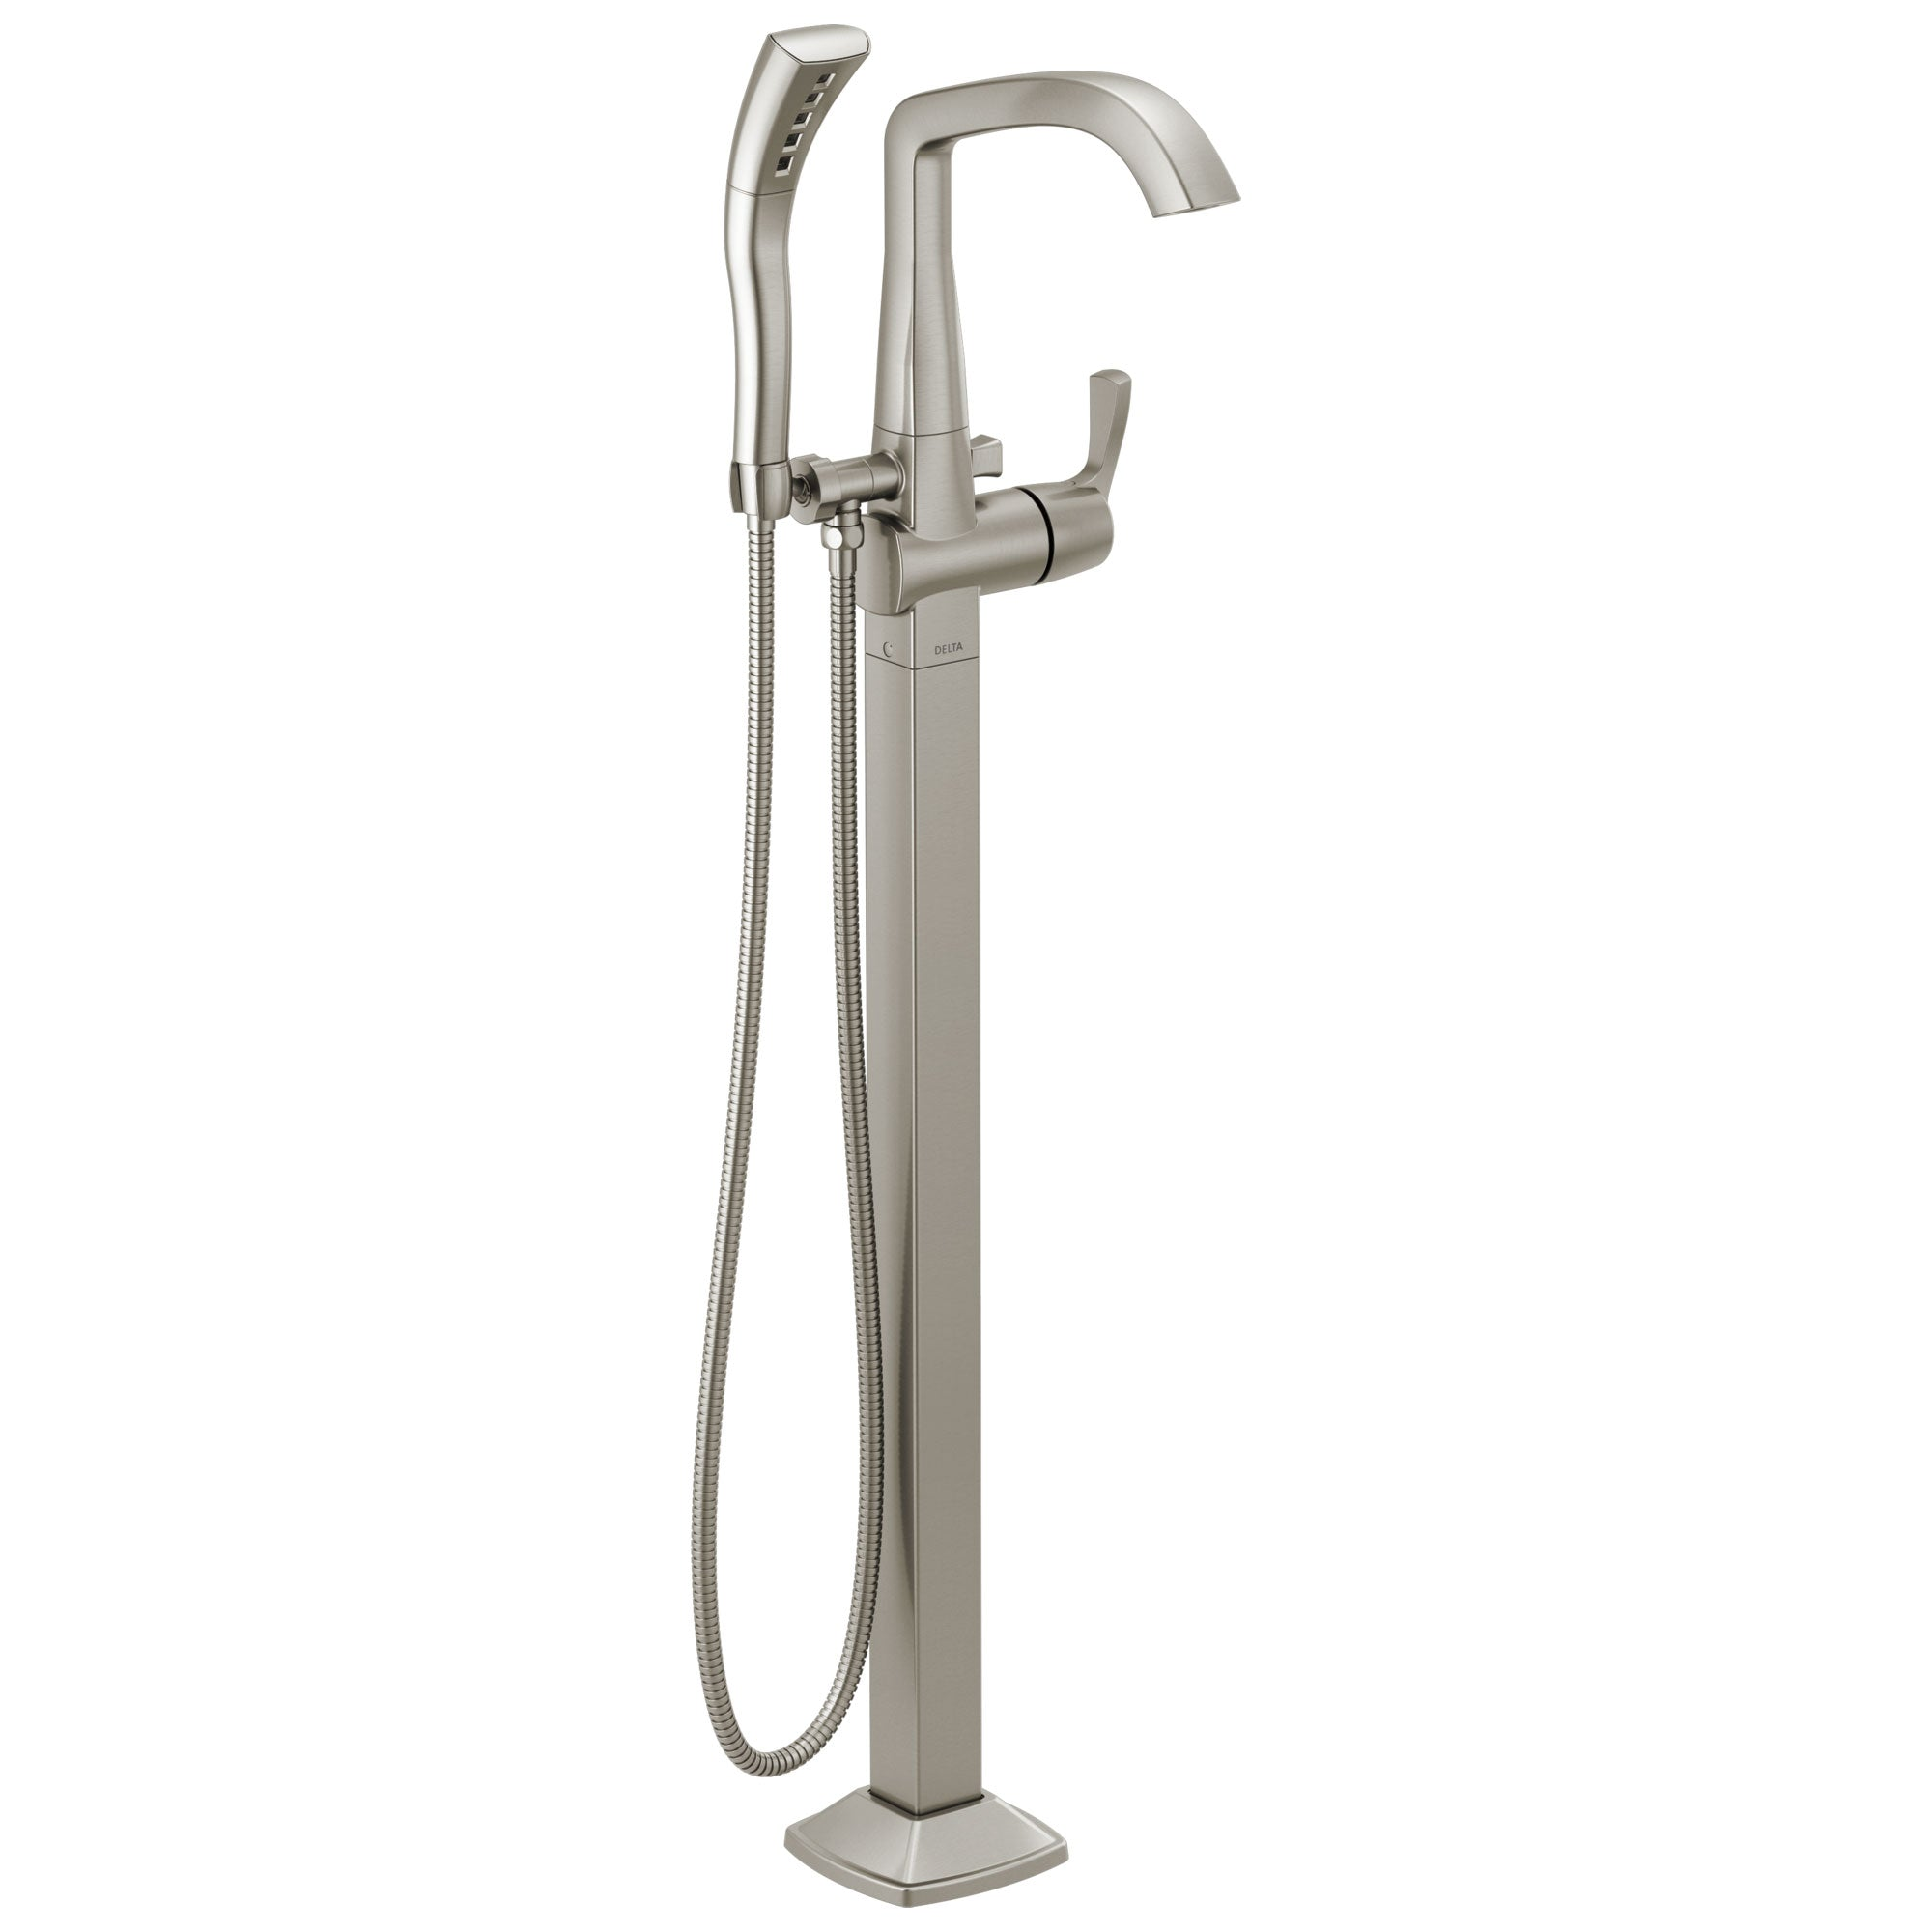 Delta Stryke Stainless Steel Finish Single Handle Floor Mount Tub Filler Faucet with Hand Sprayer Trim Kit (Requires Valve) DT4776SSFL